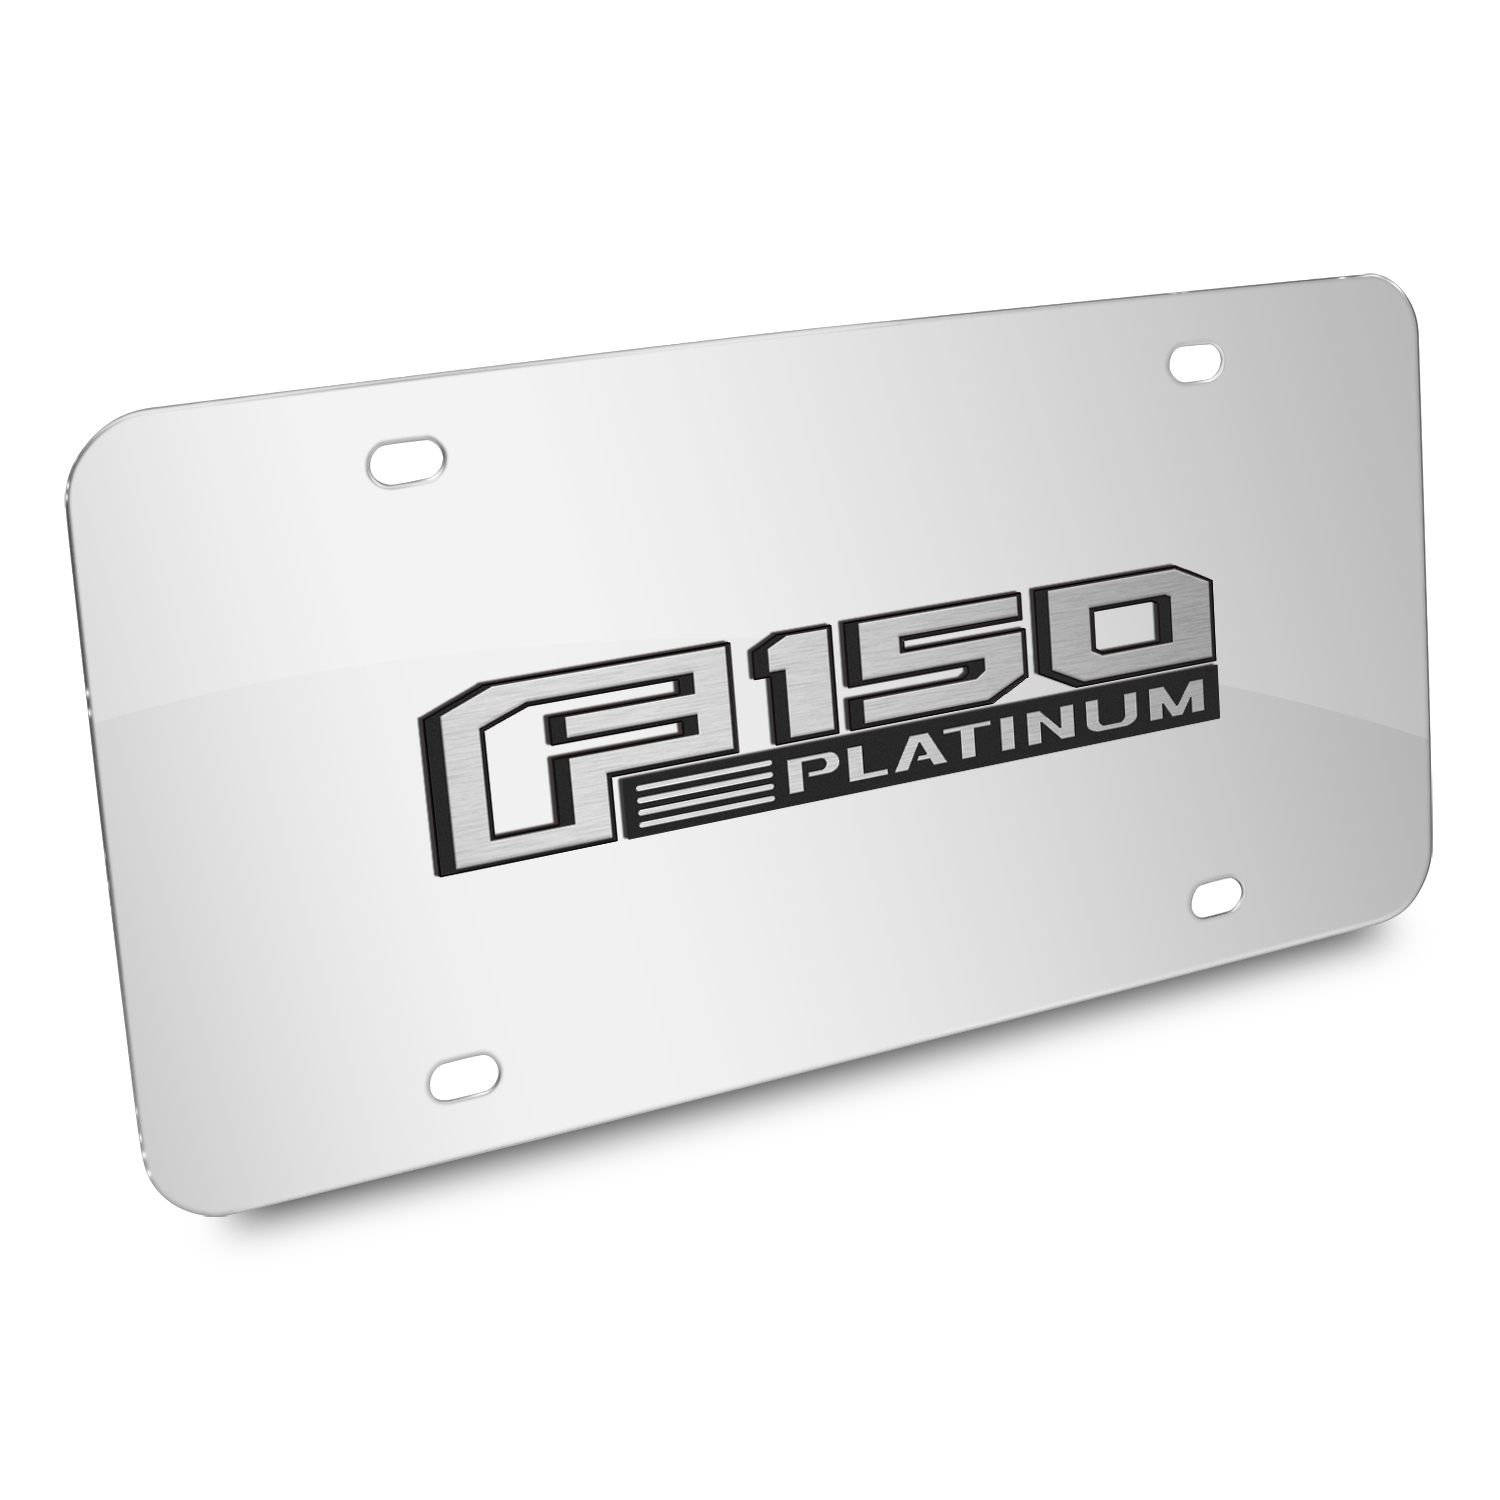 Ford 150 Platinum 3D Mirror Chrome Stainless Steel License Plate